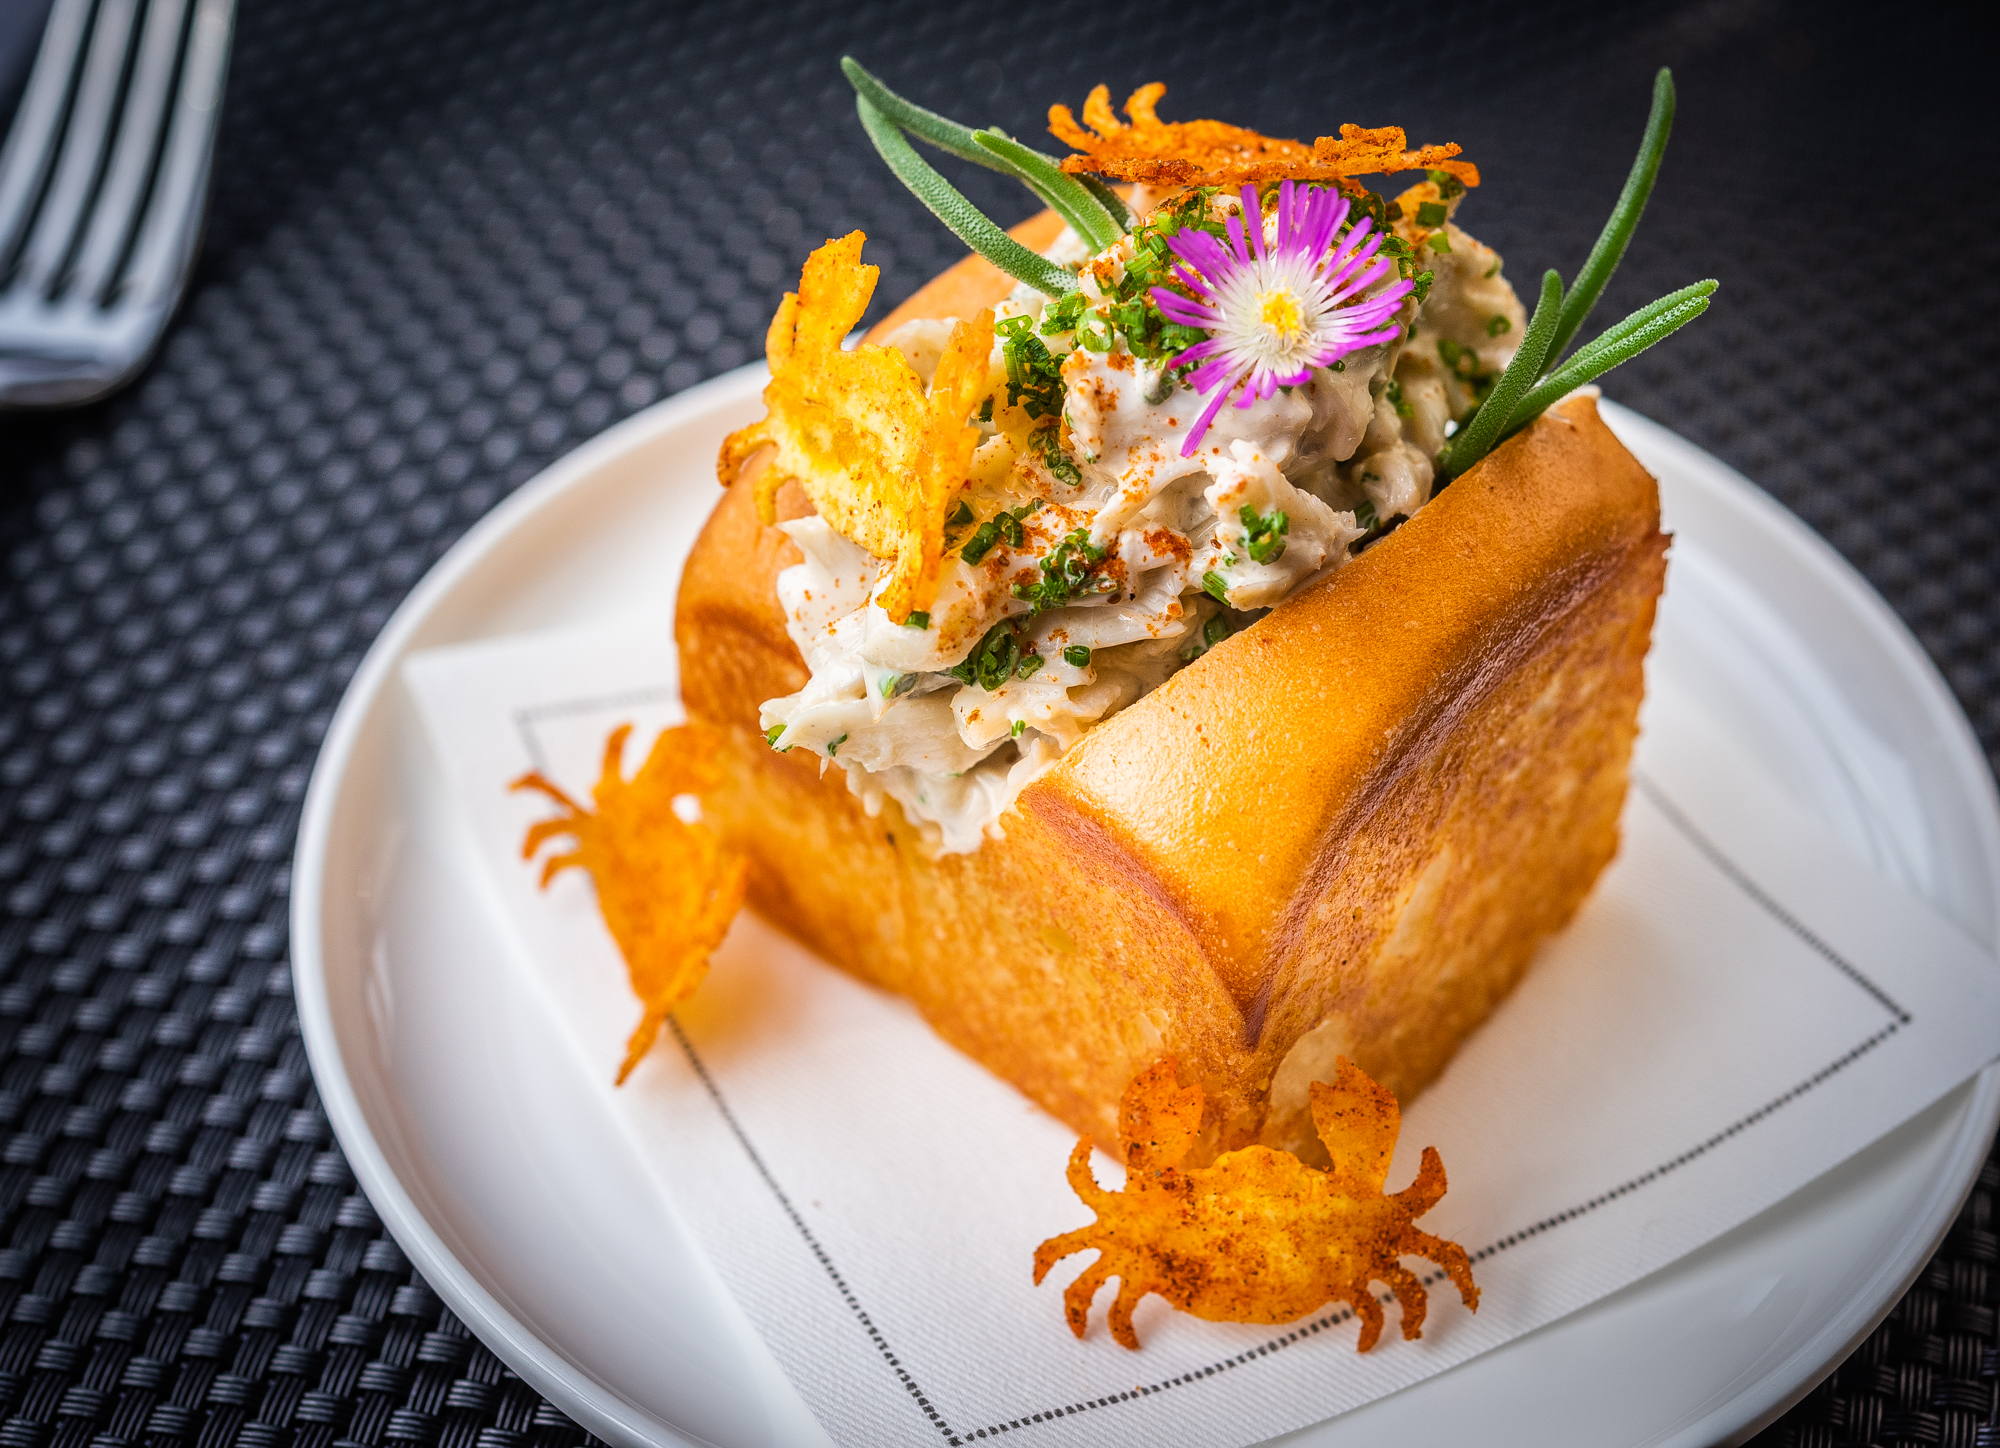 Estuary crab roll, with bread crab-shaped garnishes and edible flowers